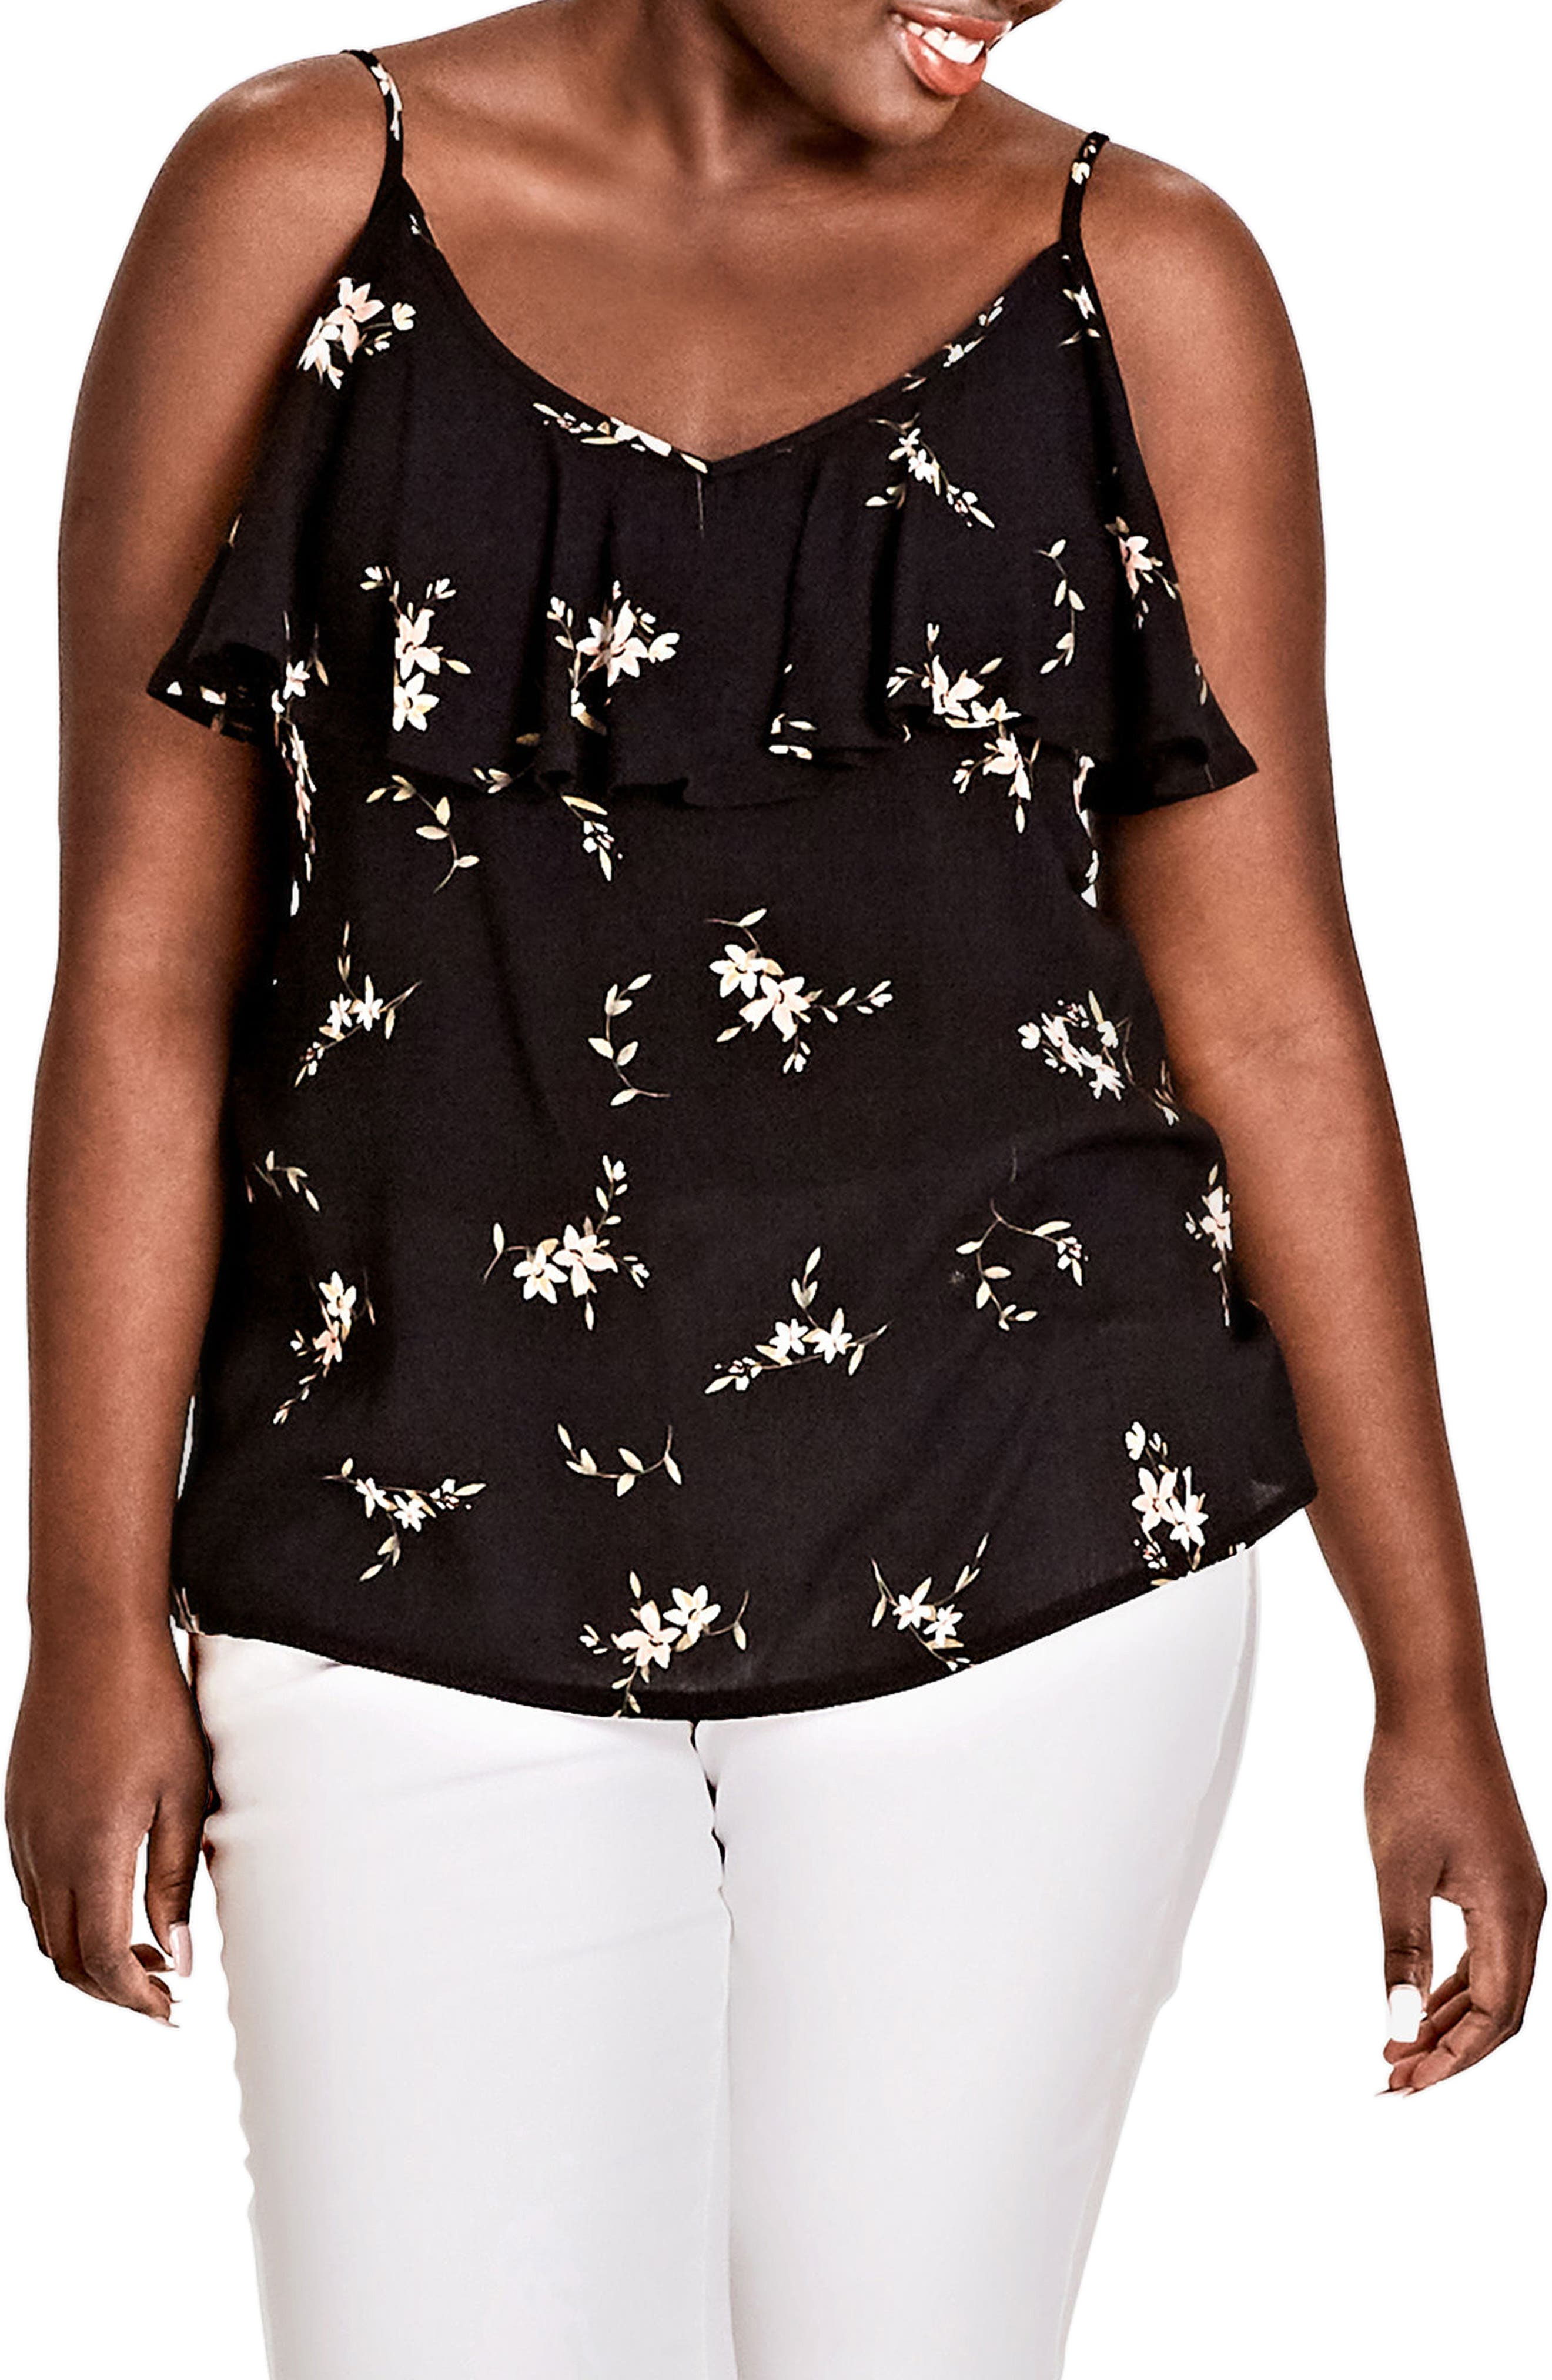 City Chic Aerial Floral Top (Plus Size)